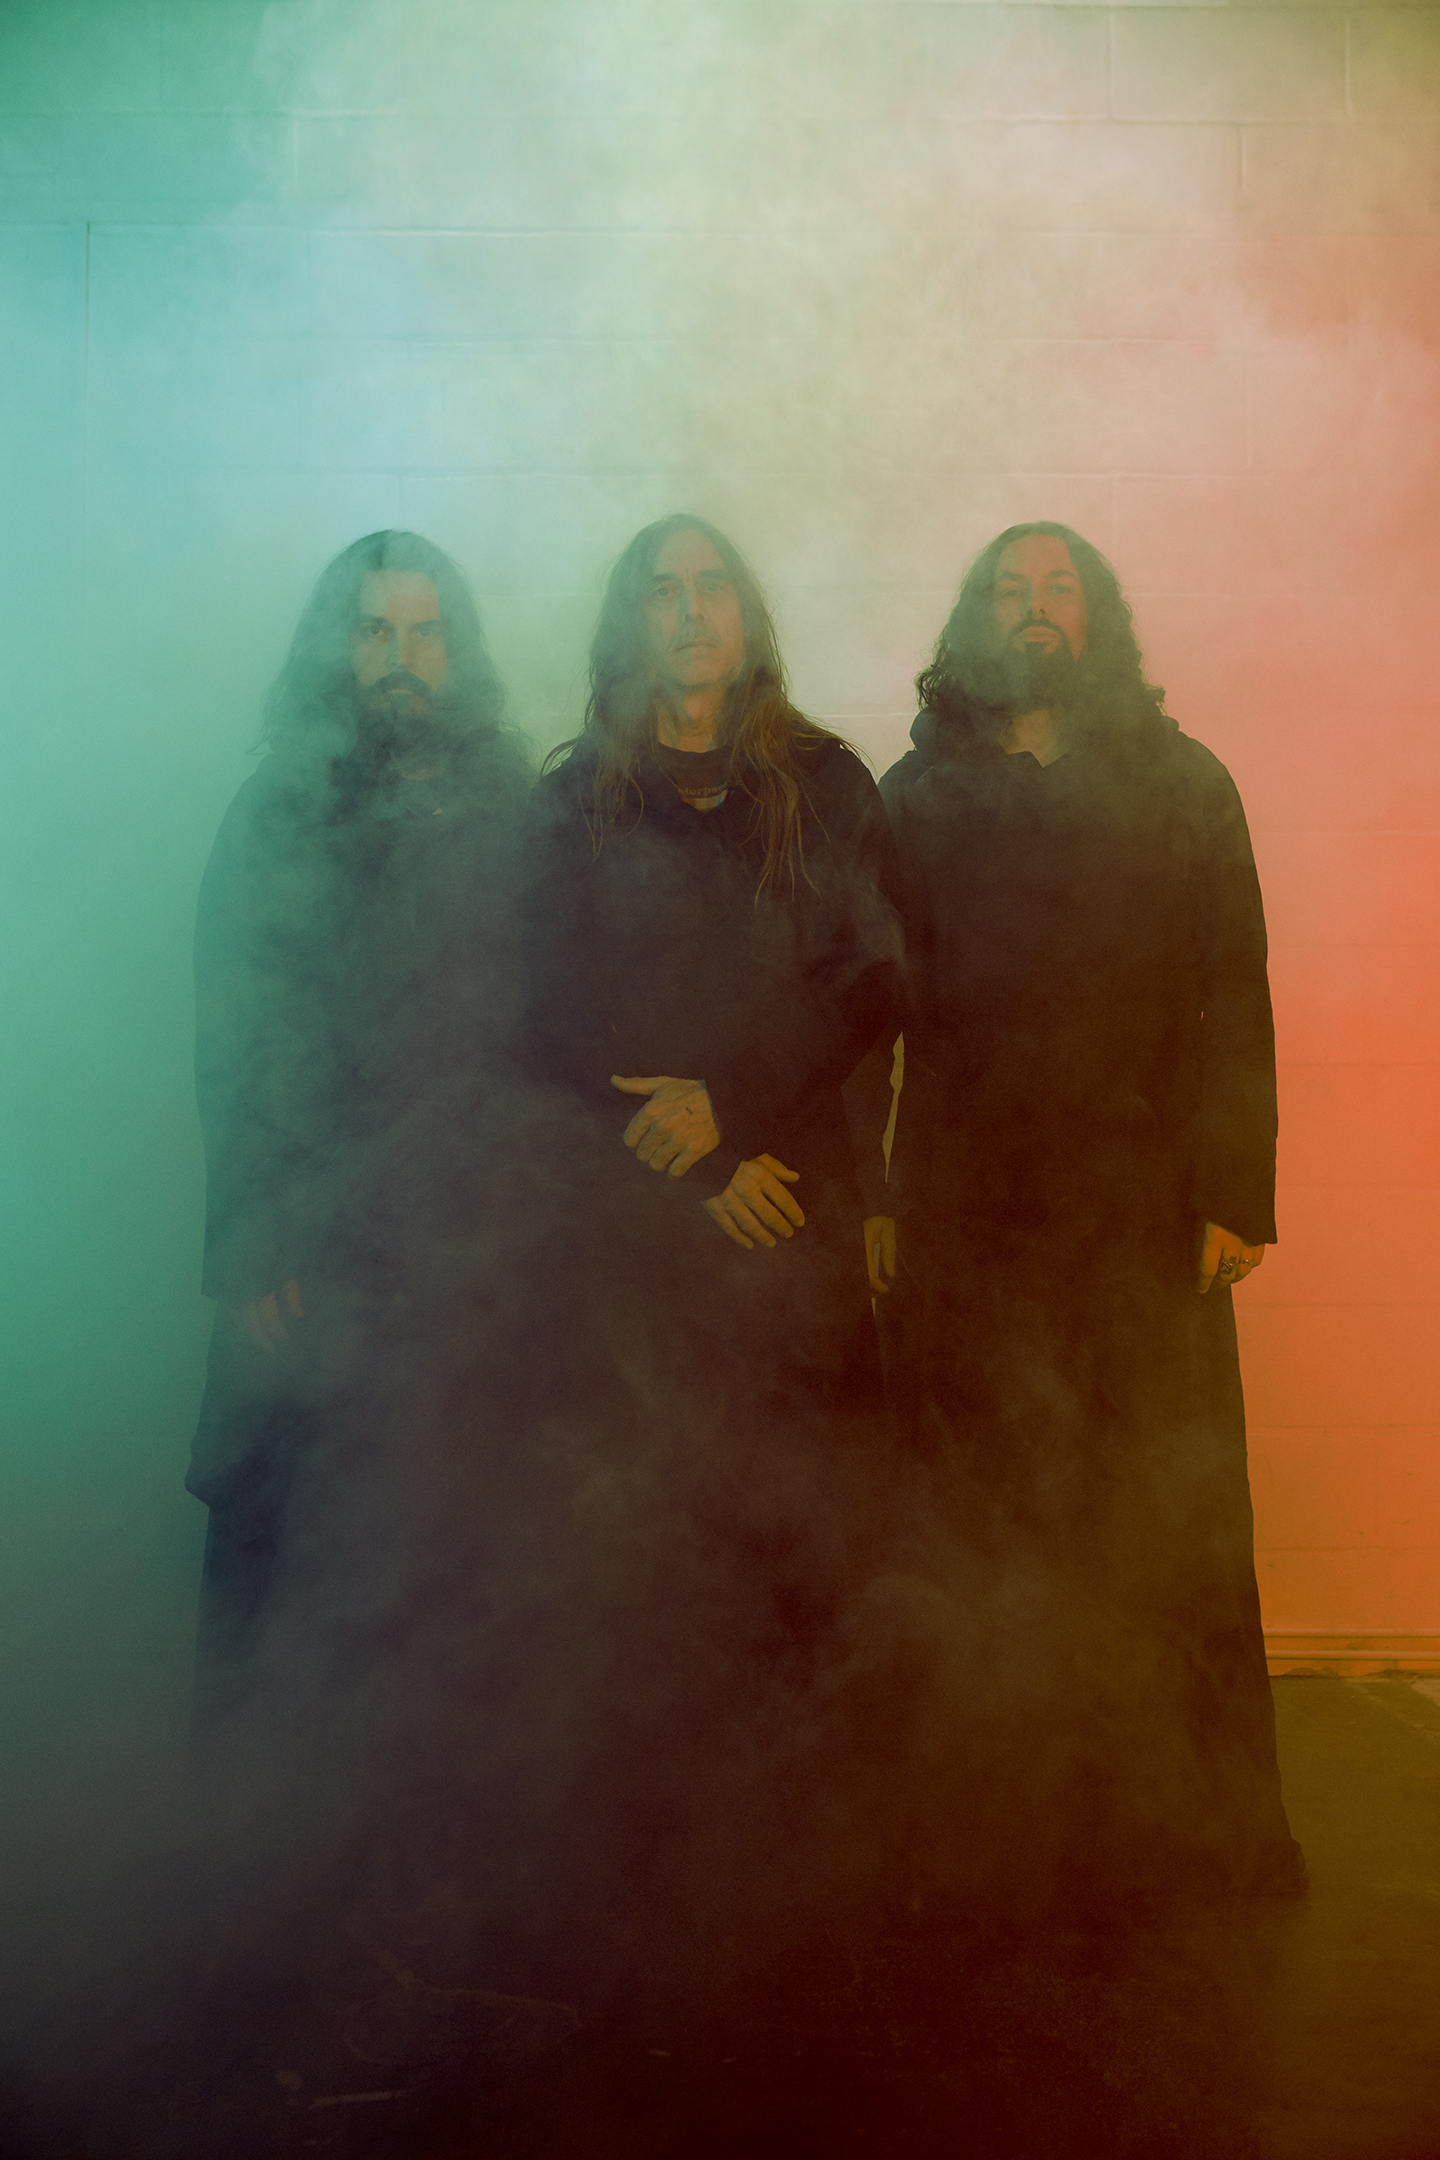 SUNN O))): Life Metal Available On CD And LP Formats Through The SUNN O))) And Southern Lord Stores Today